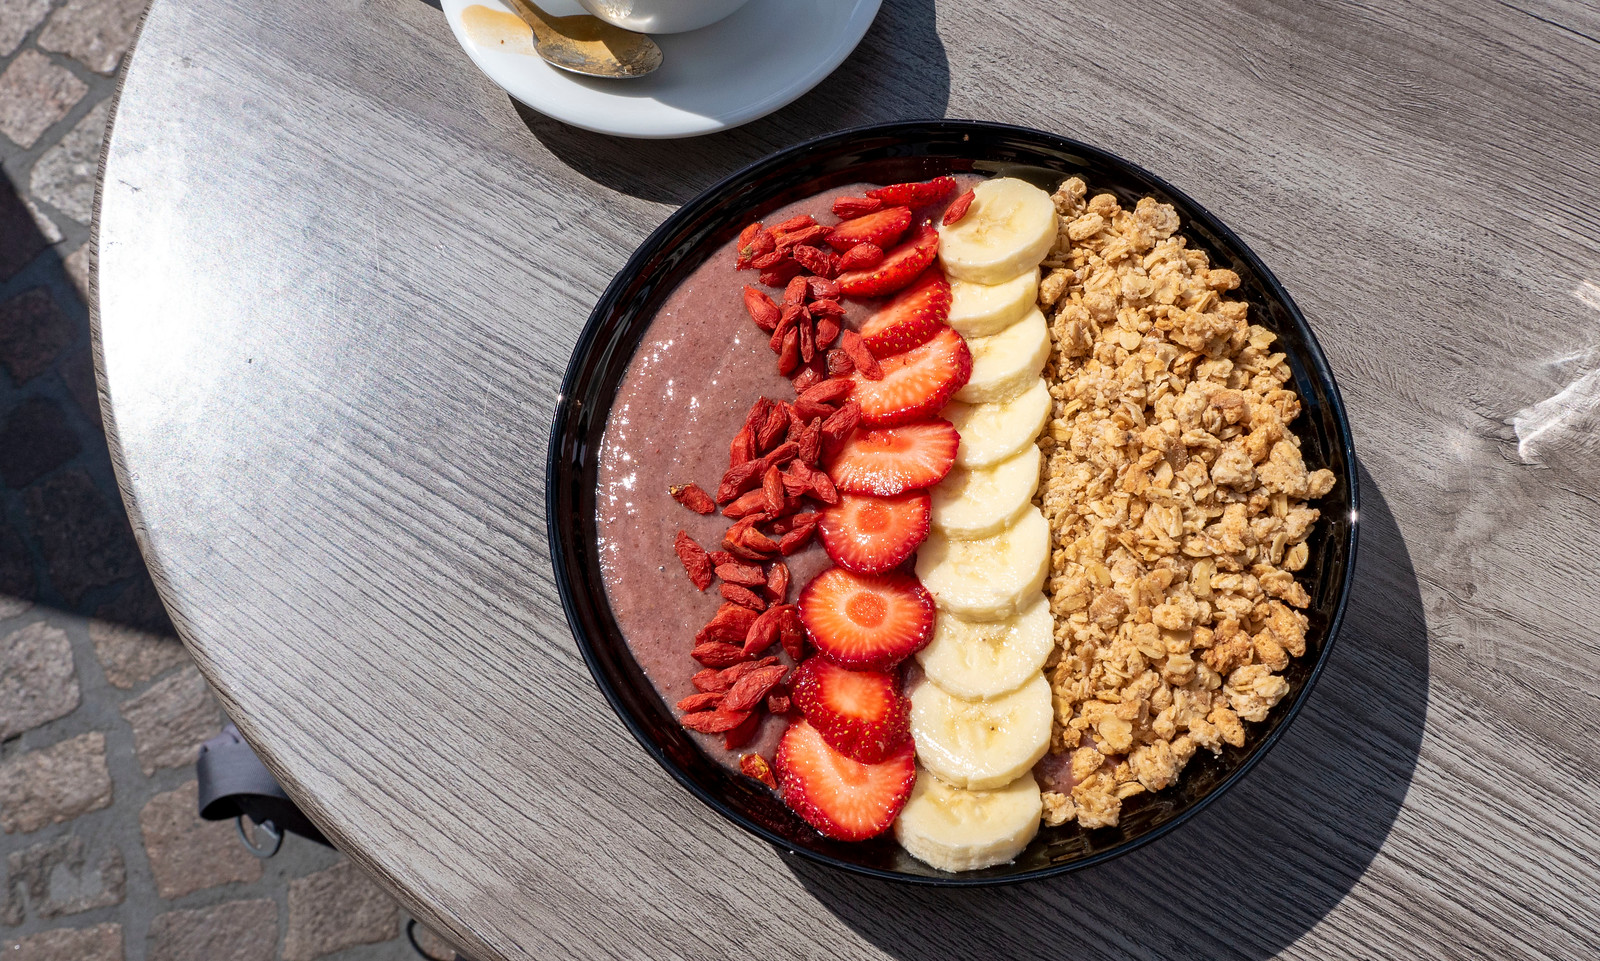 Spectacular Things to Do in Heidelberg Germany - Vegan smoothie bowl